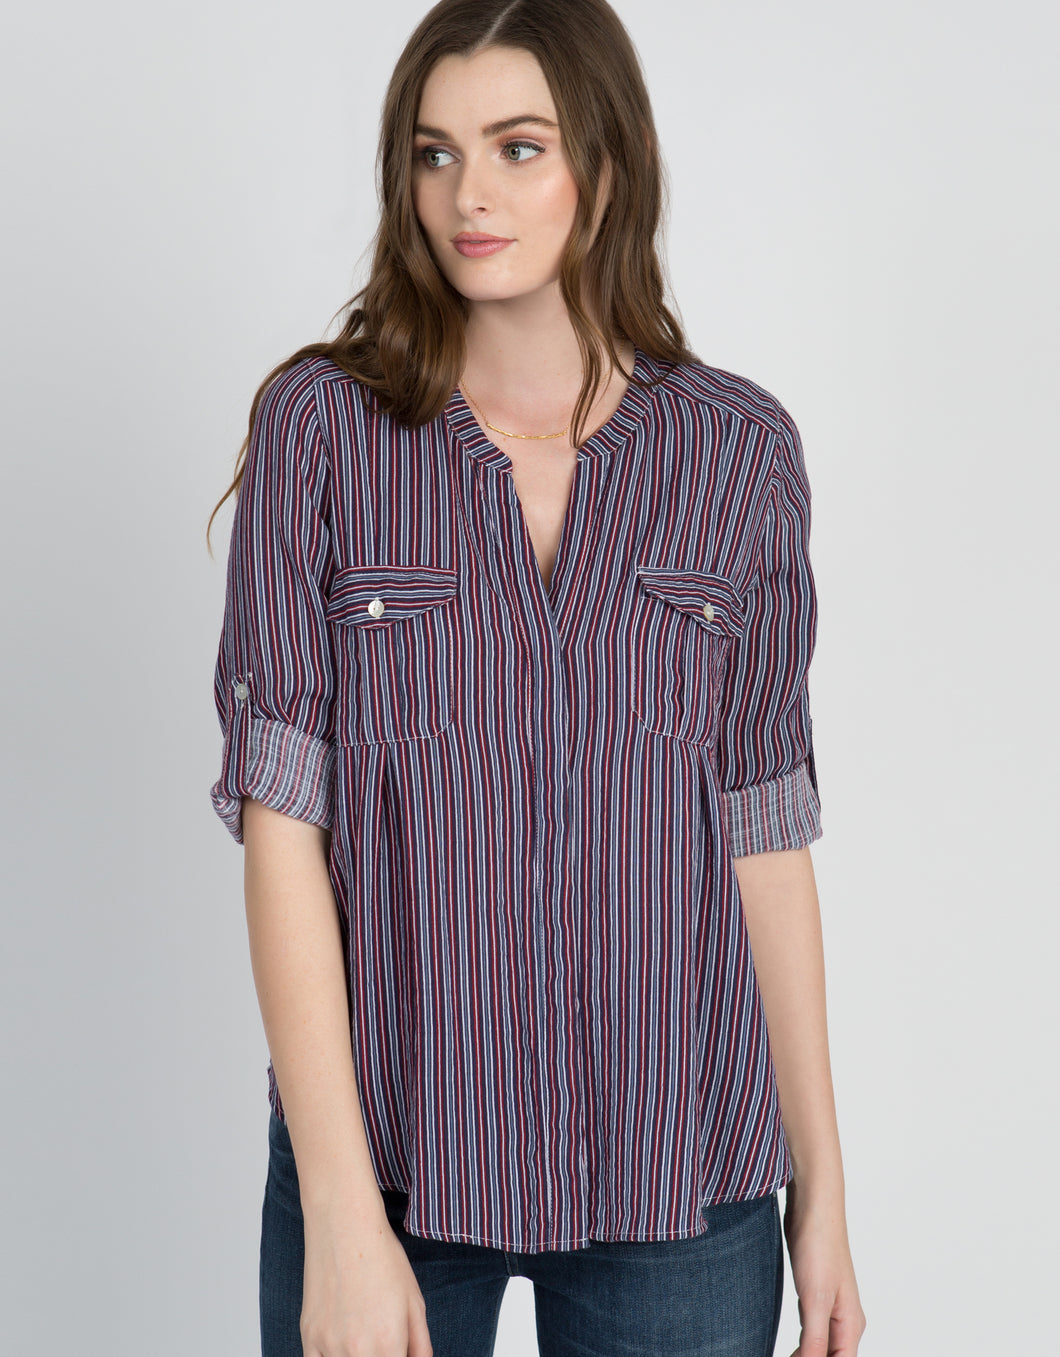 women's striped button down shirt